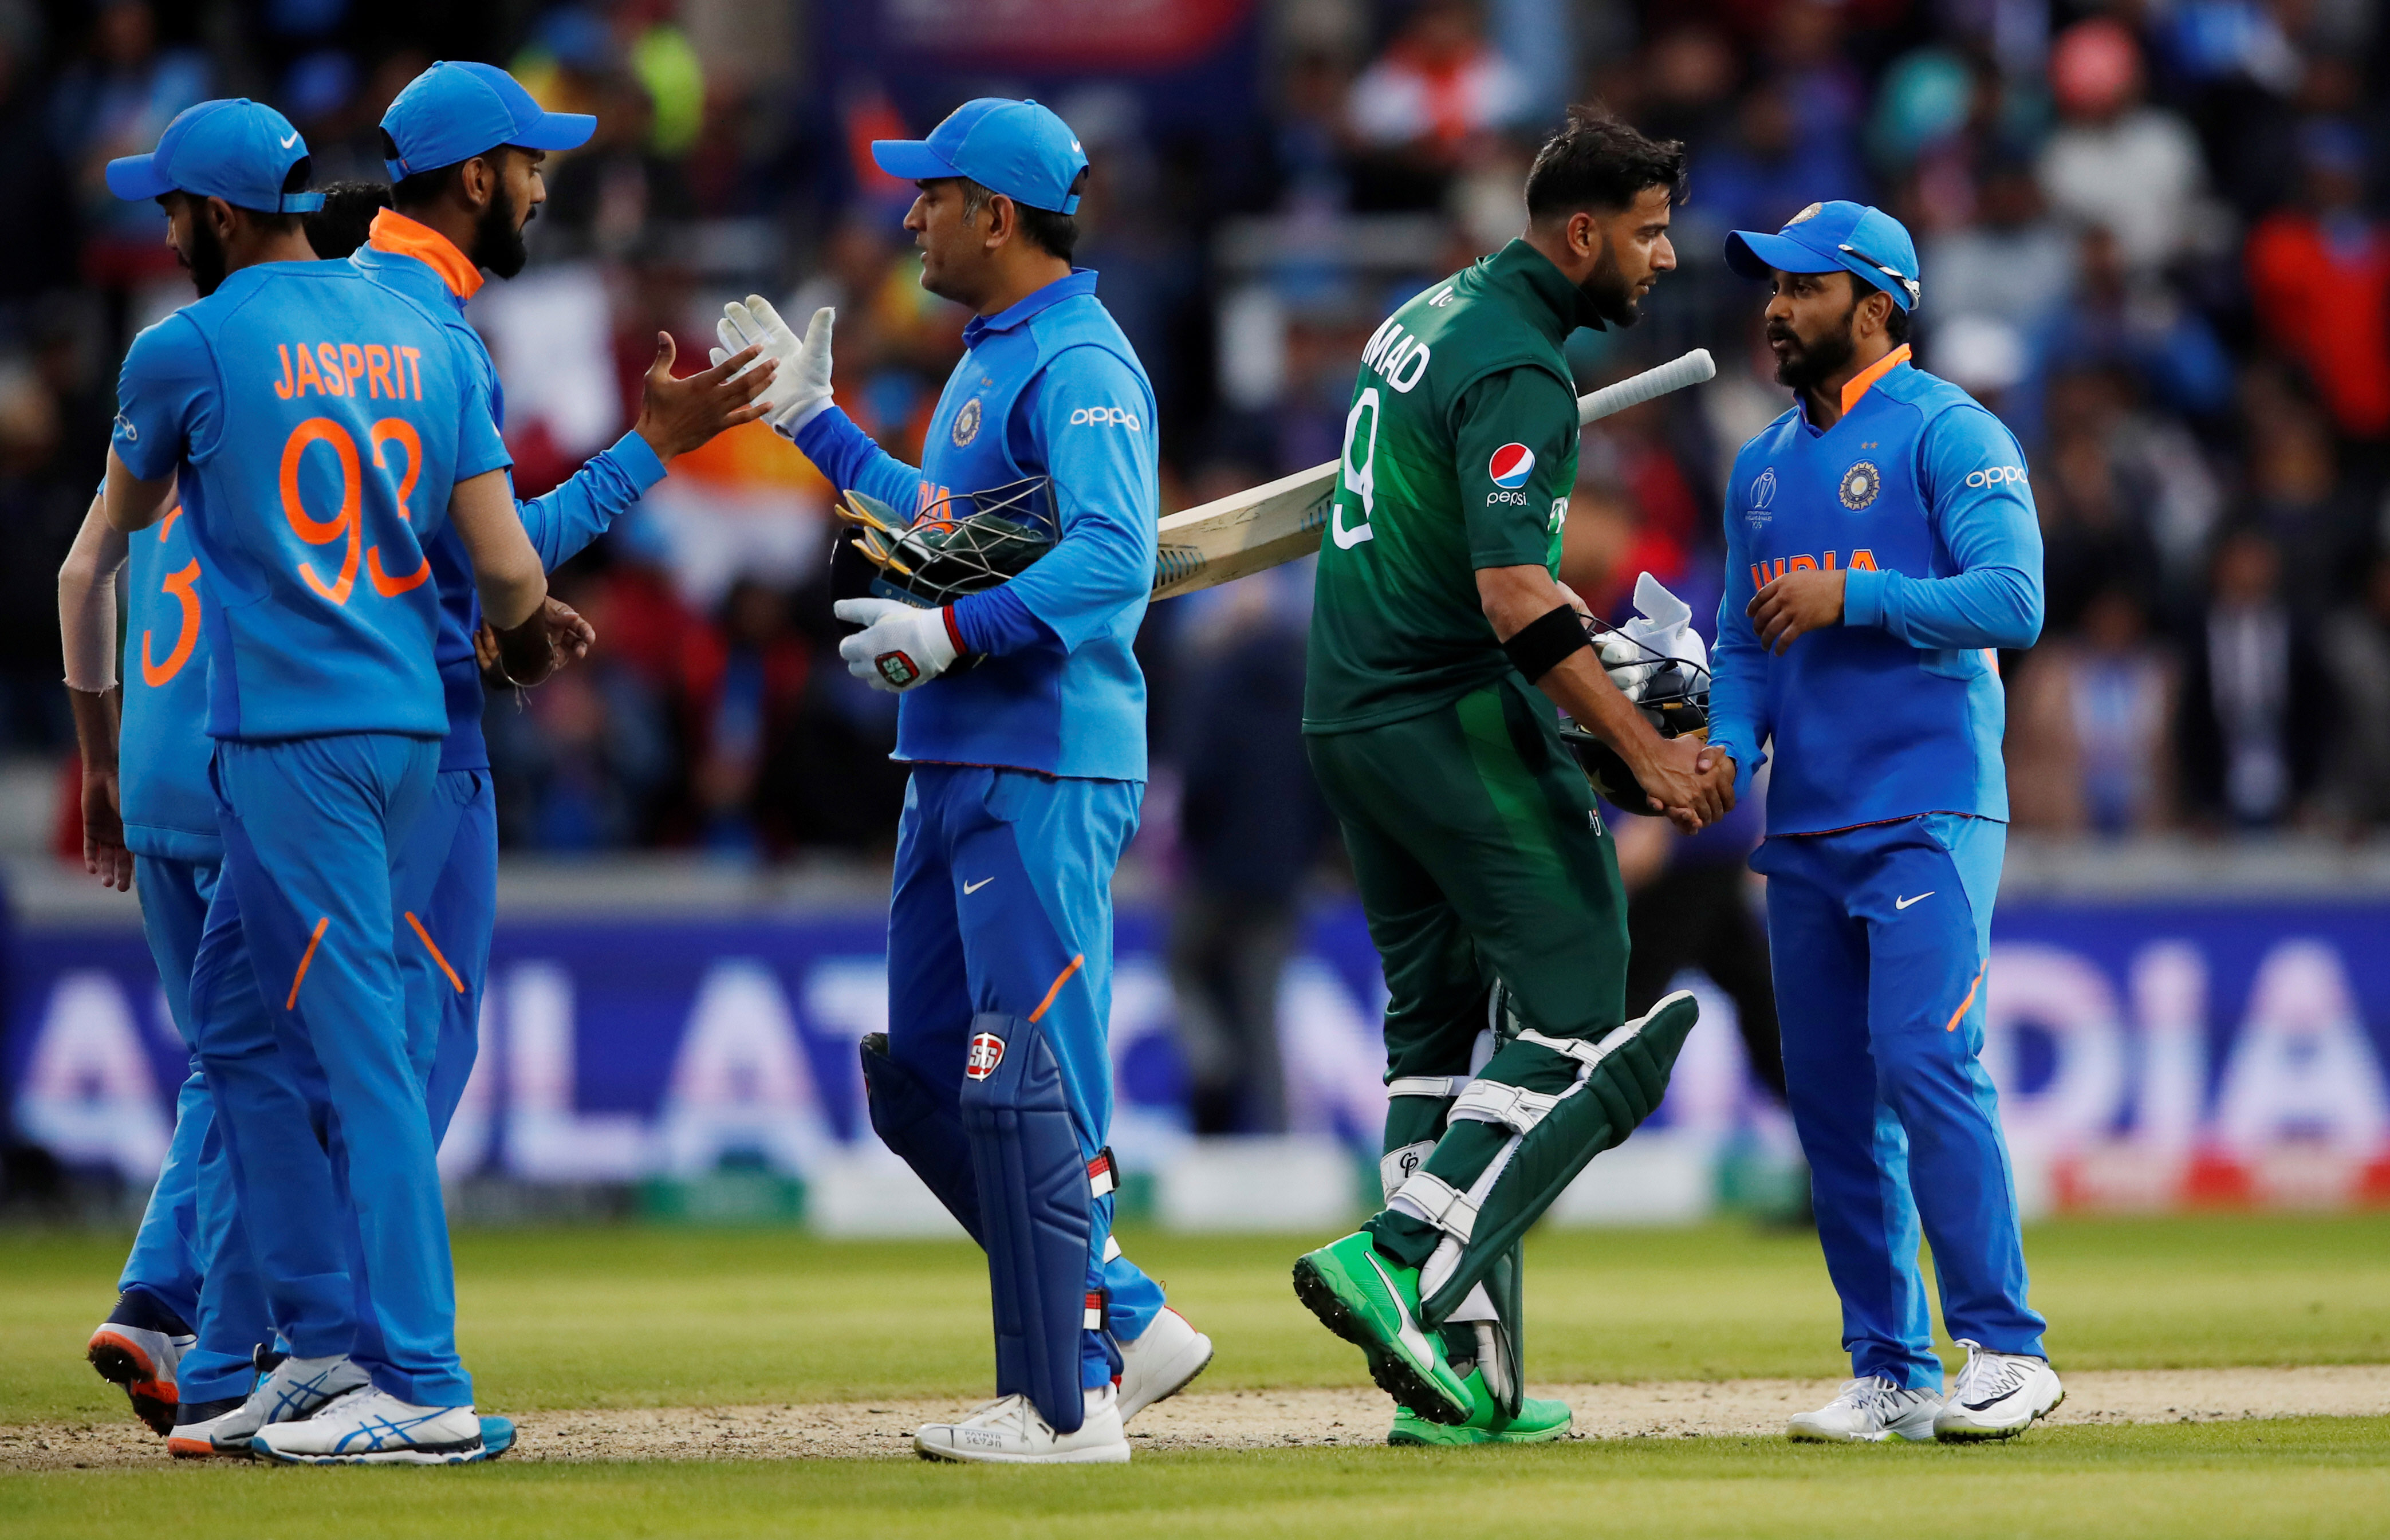 World Cup 2019: India vs Pakistan